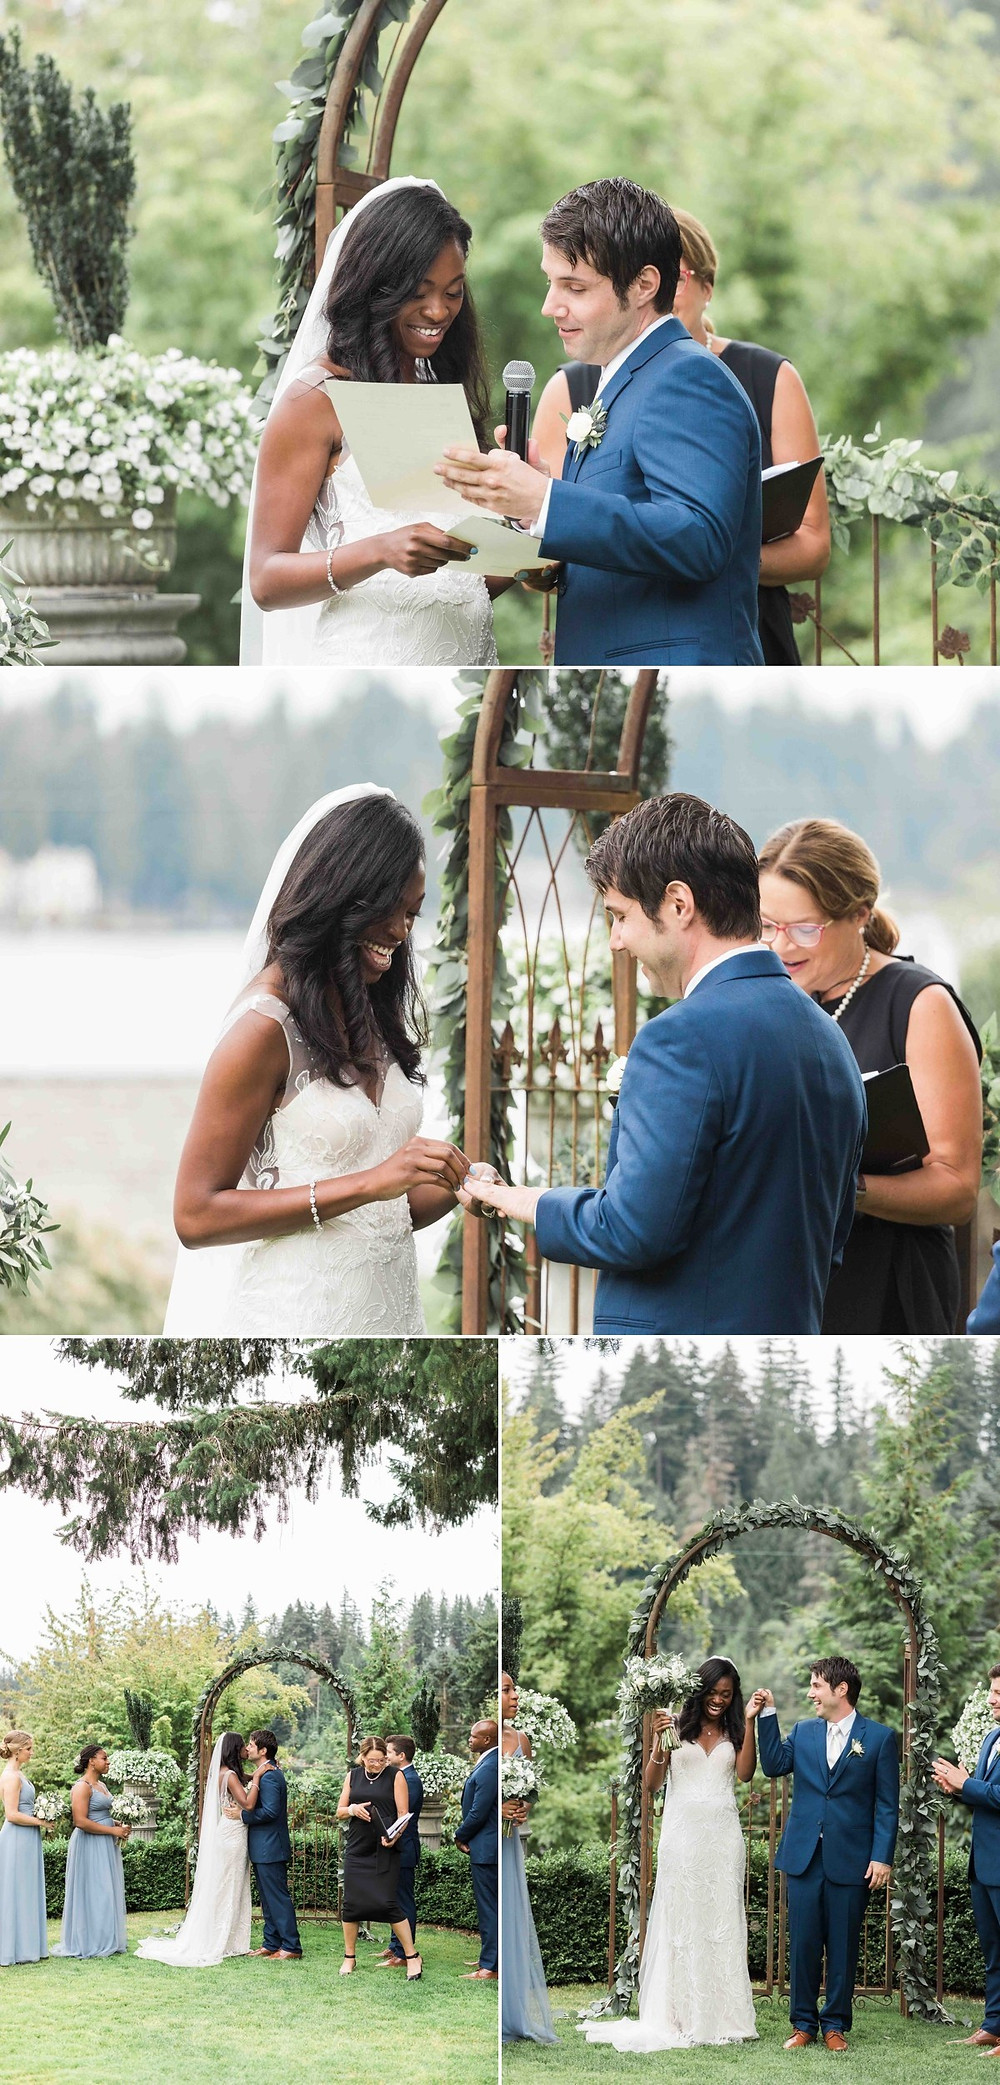 A bride and groom recite their vows during their wedding at Green Gates at Flowing Lake, a wedding venue in Snohomish near Seattle, WA. | My Snohomish Wedding | Snohomish Wedding Planning